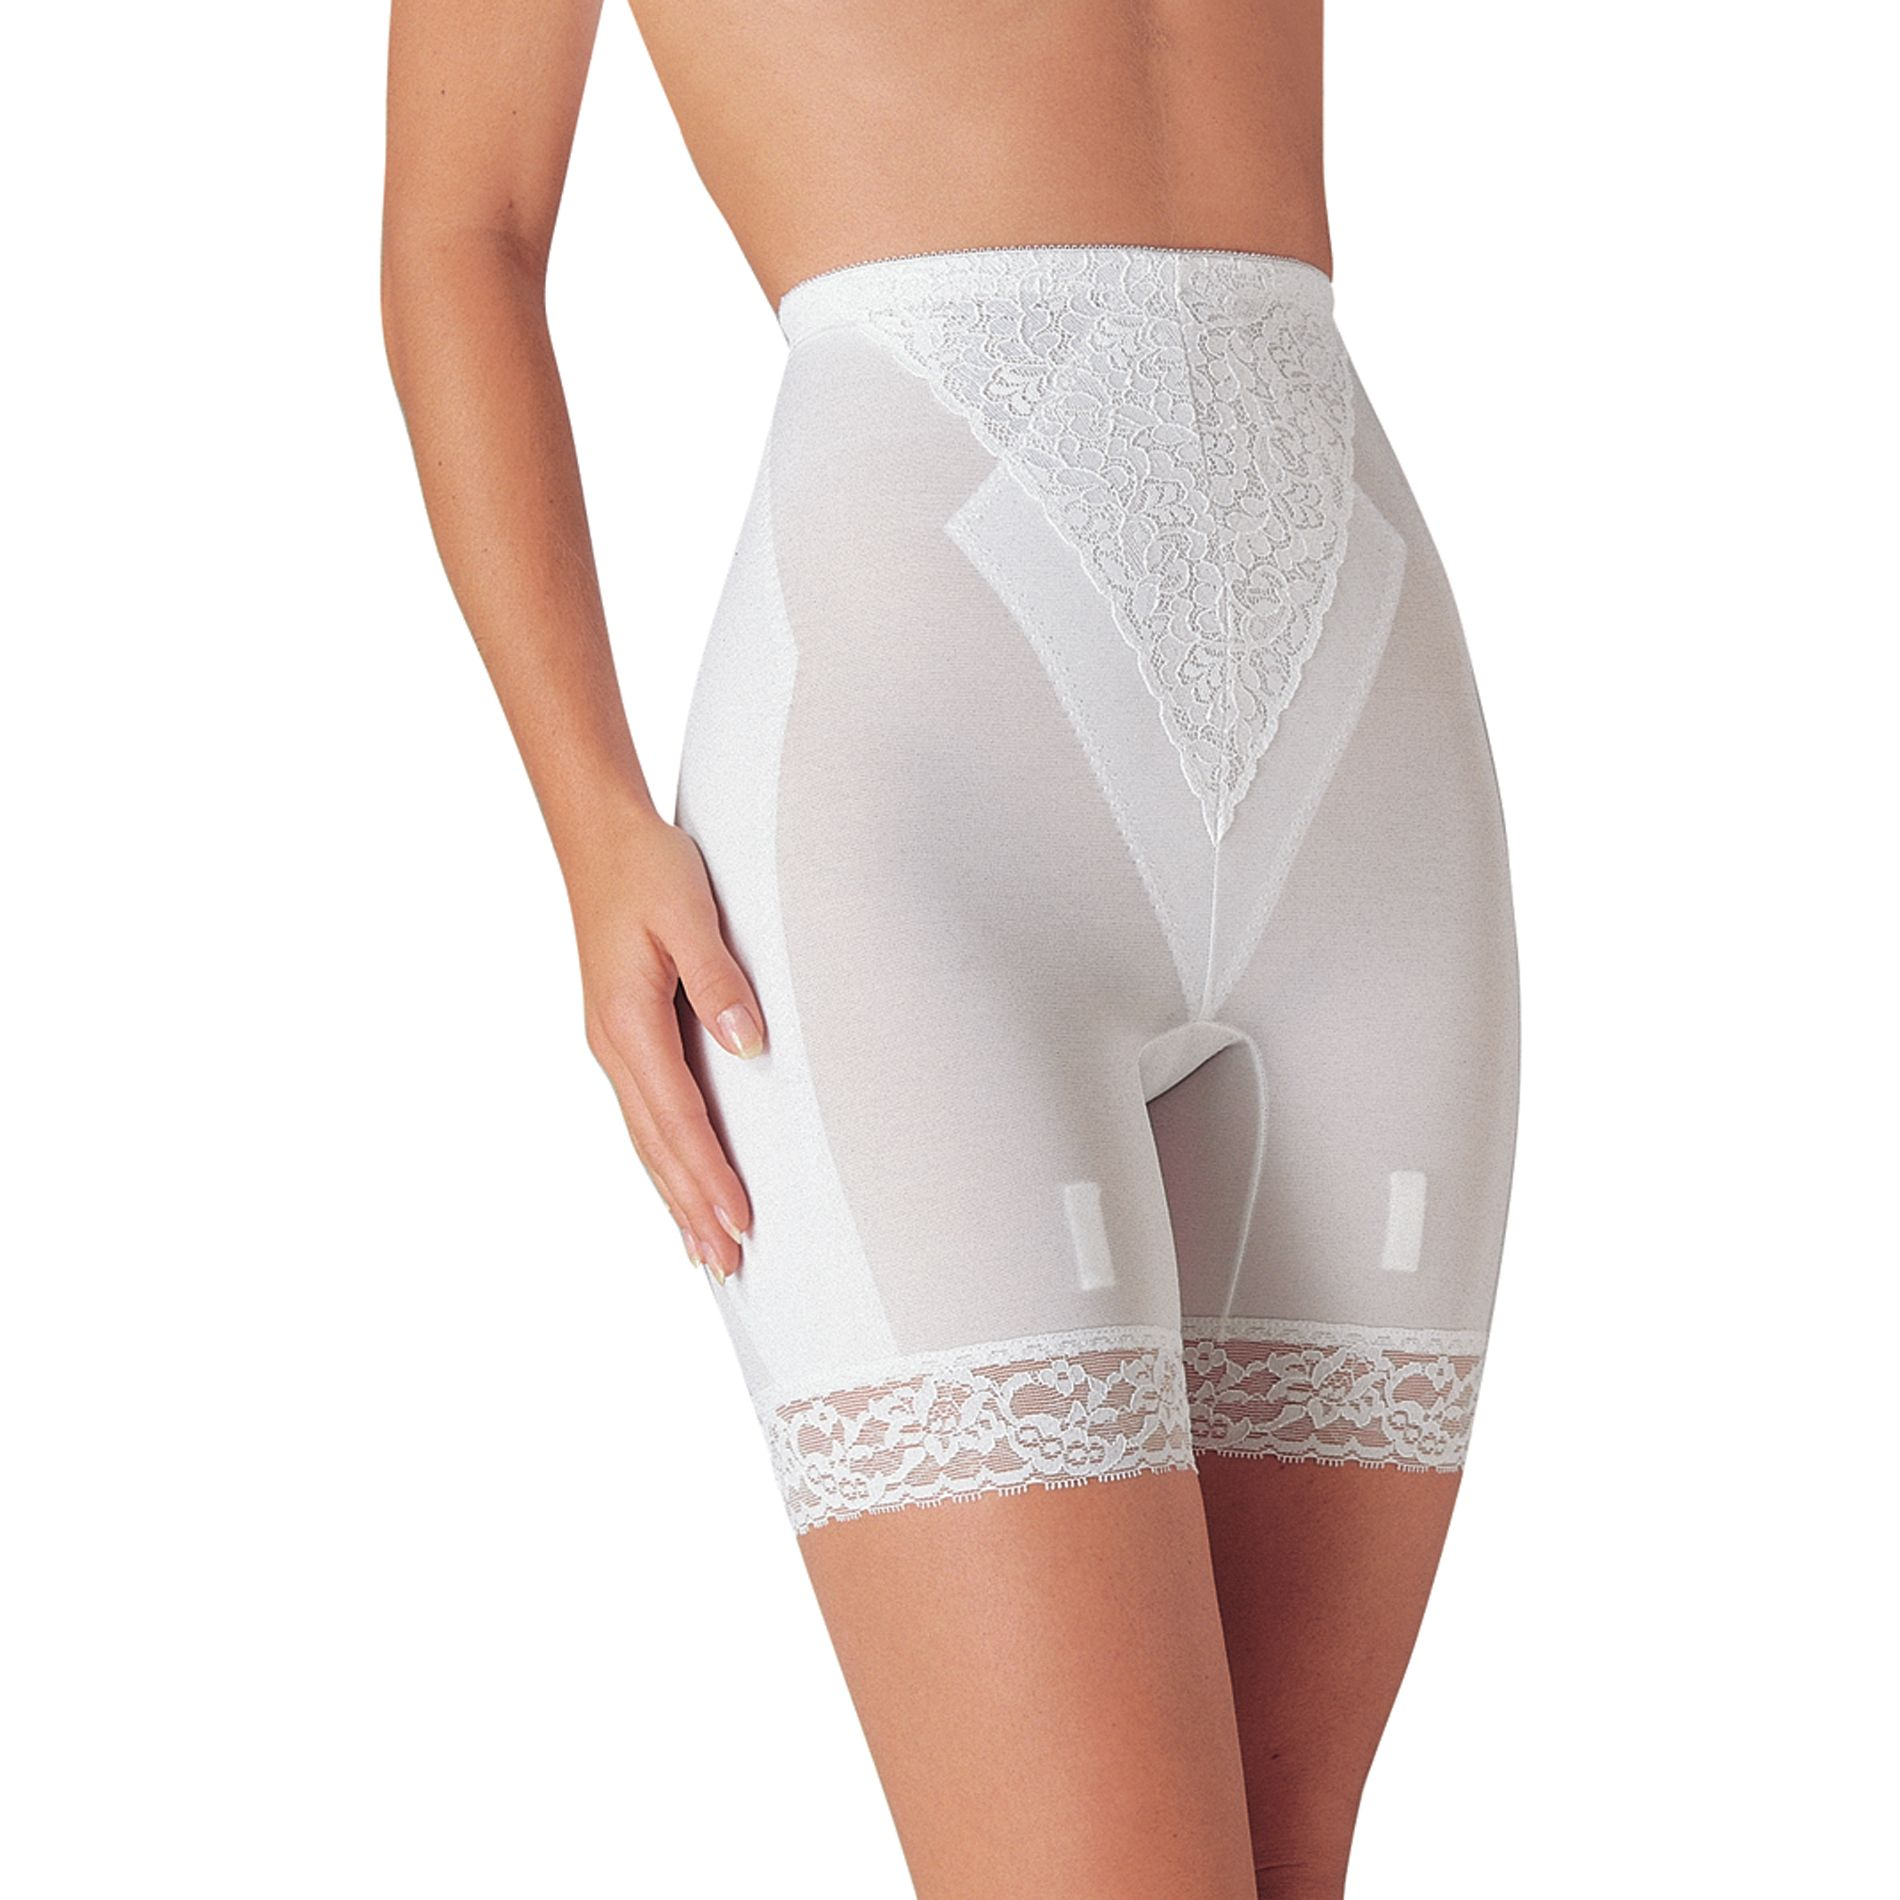 Slim Shape Women's Brief - Midleg at Kmart.com